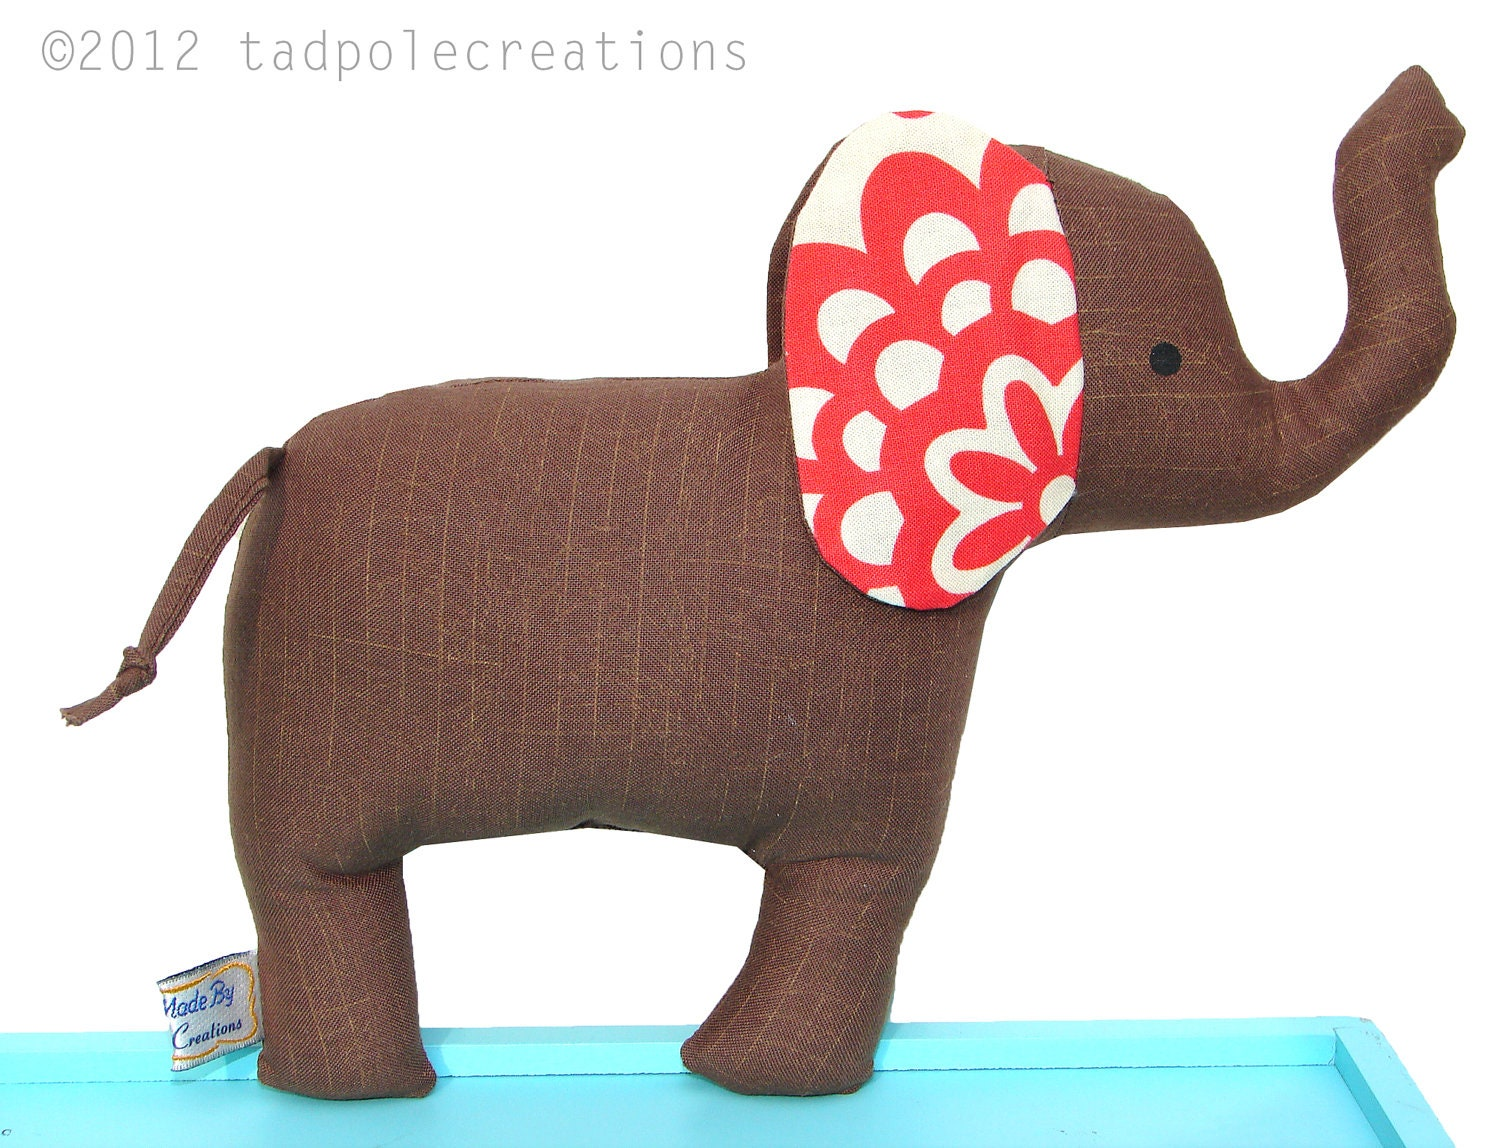 Cloth Elephant Toy with Rattle - Brown with Red Ears - Baby Safe - Toddler - Child Friendly - Gift for Kids Young and Old